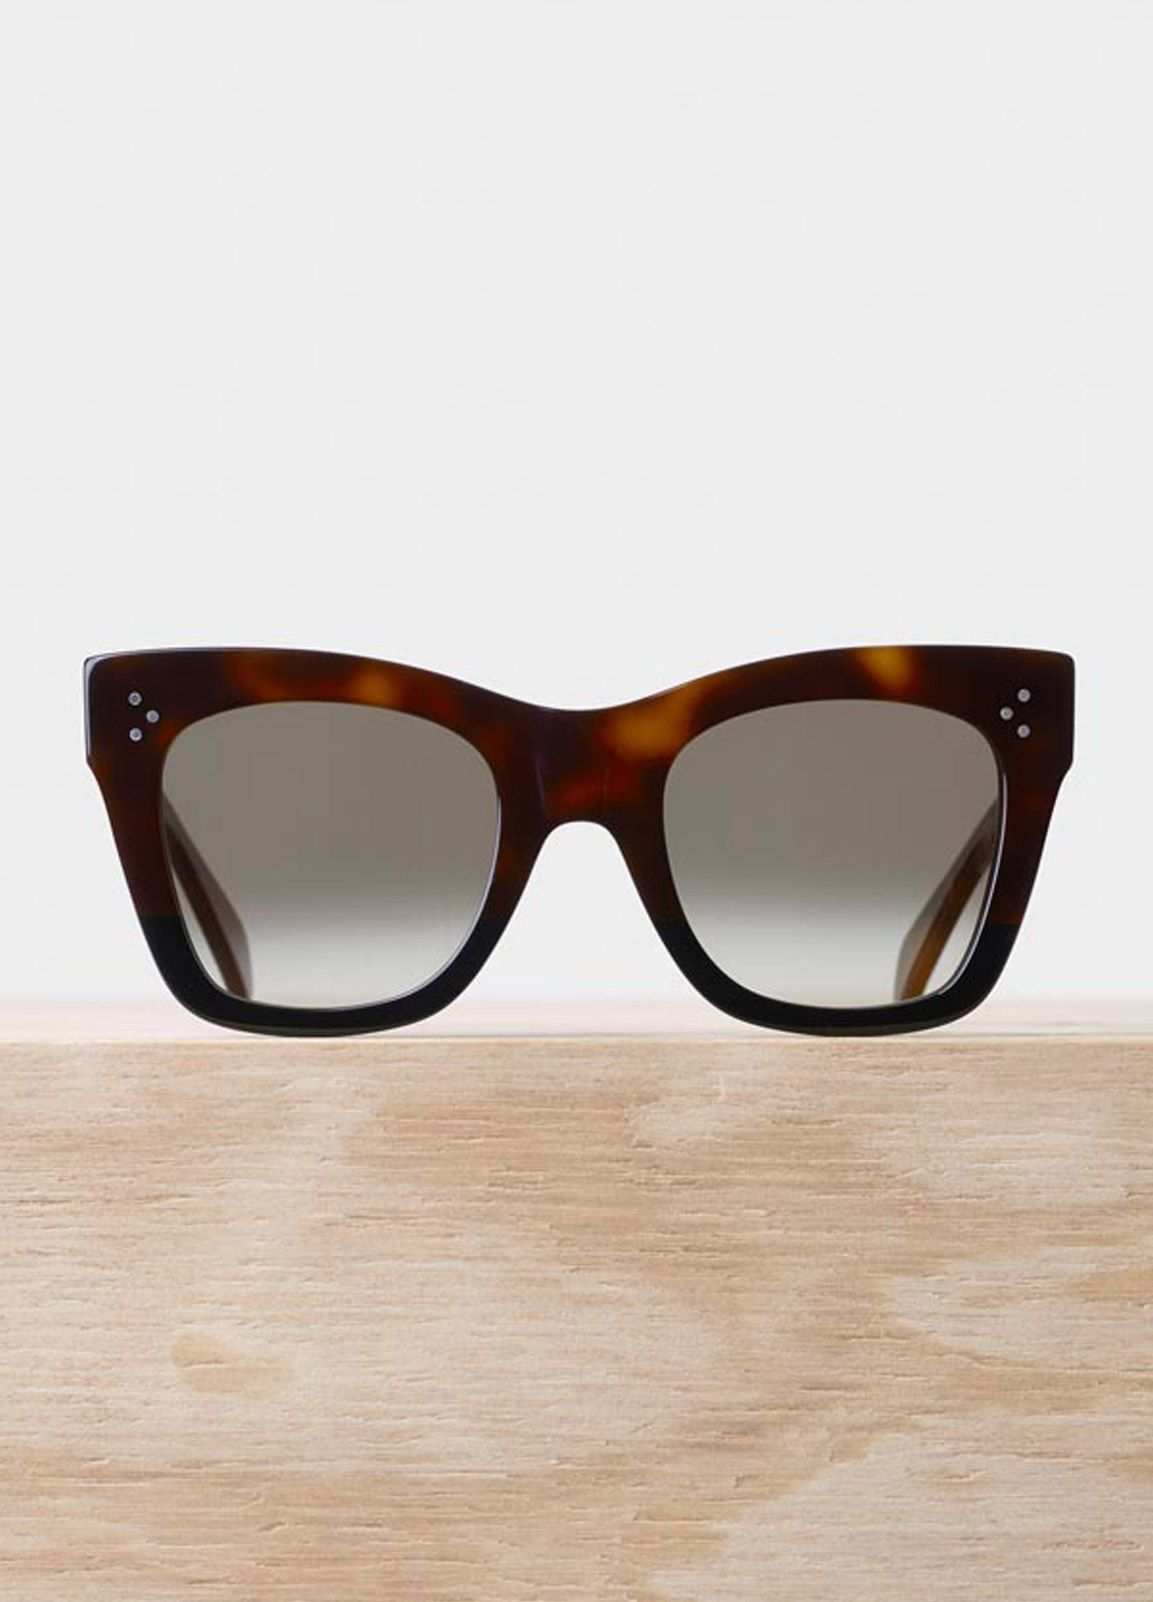 4306d6d68793 Catherine Sunglasses in Havana and Black Acetate with Brown Shaded Lenses